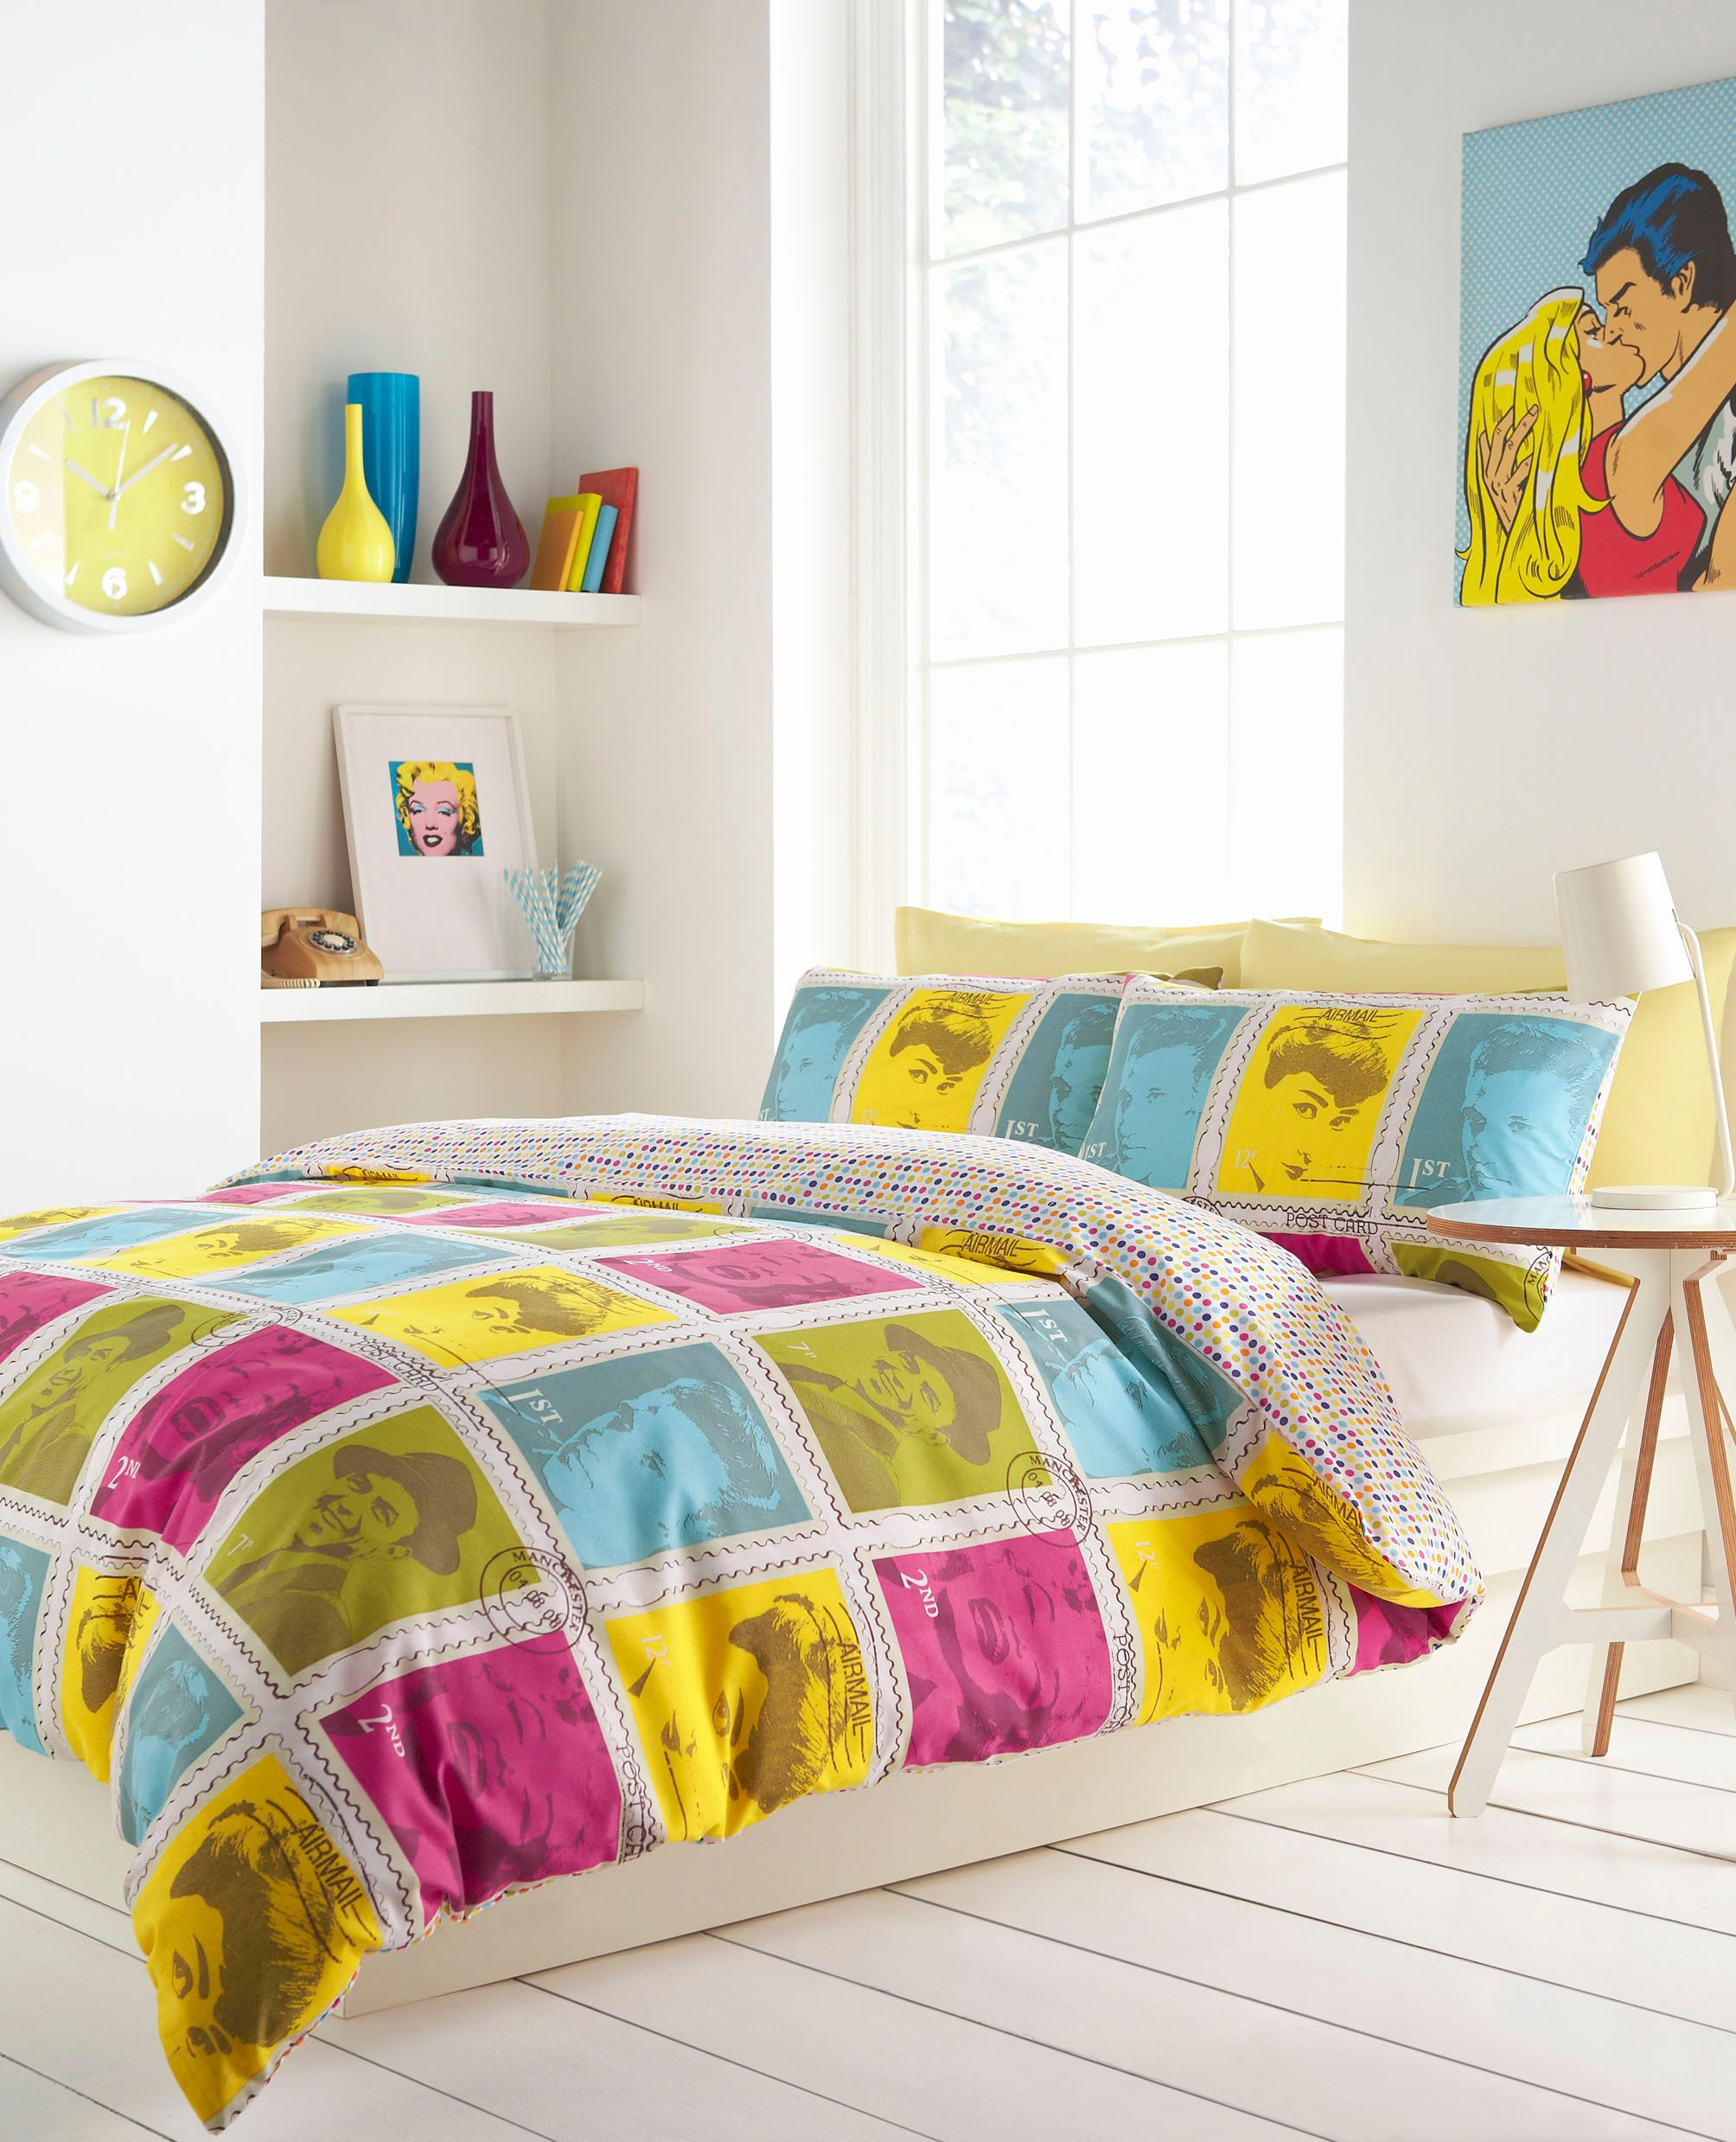 Wall of fame bed linen set